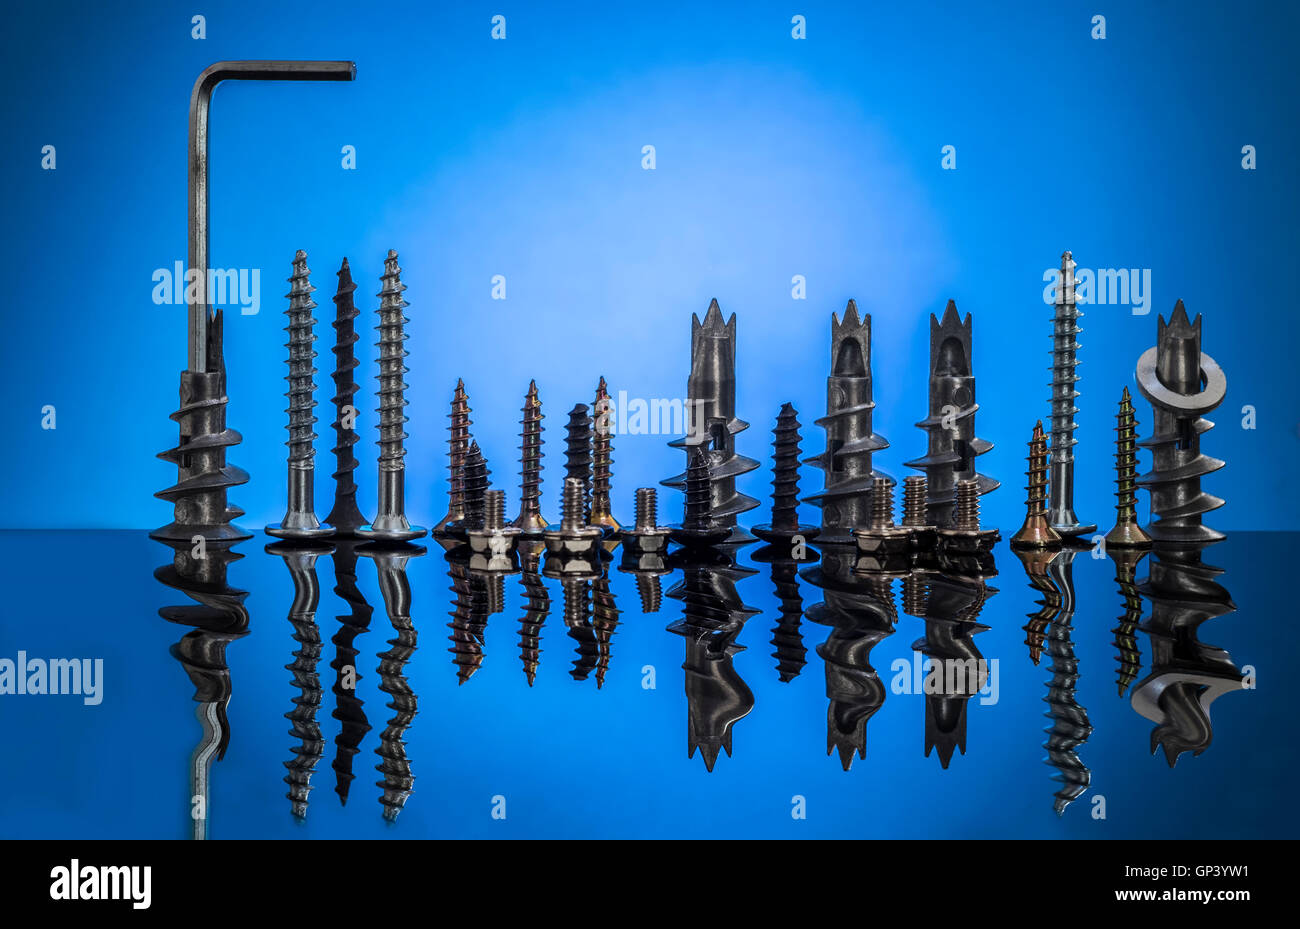 Collection of screws and bolts arranged as night time city skyline with rippled reflection in water effect. - Stock Image